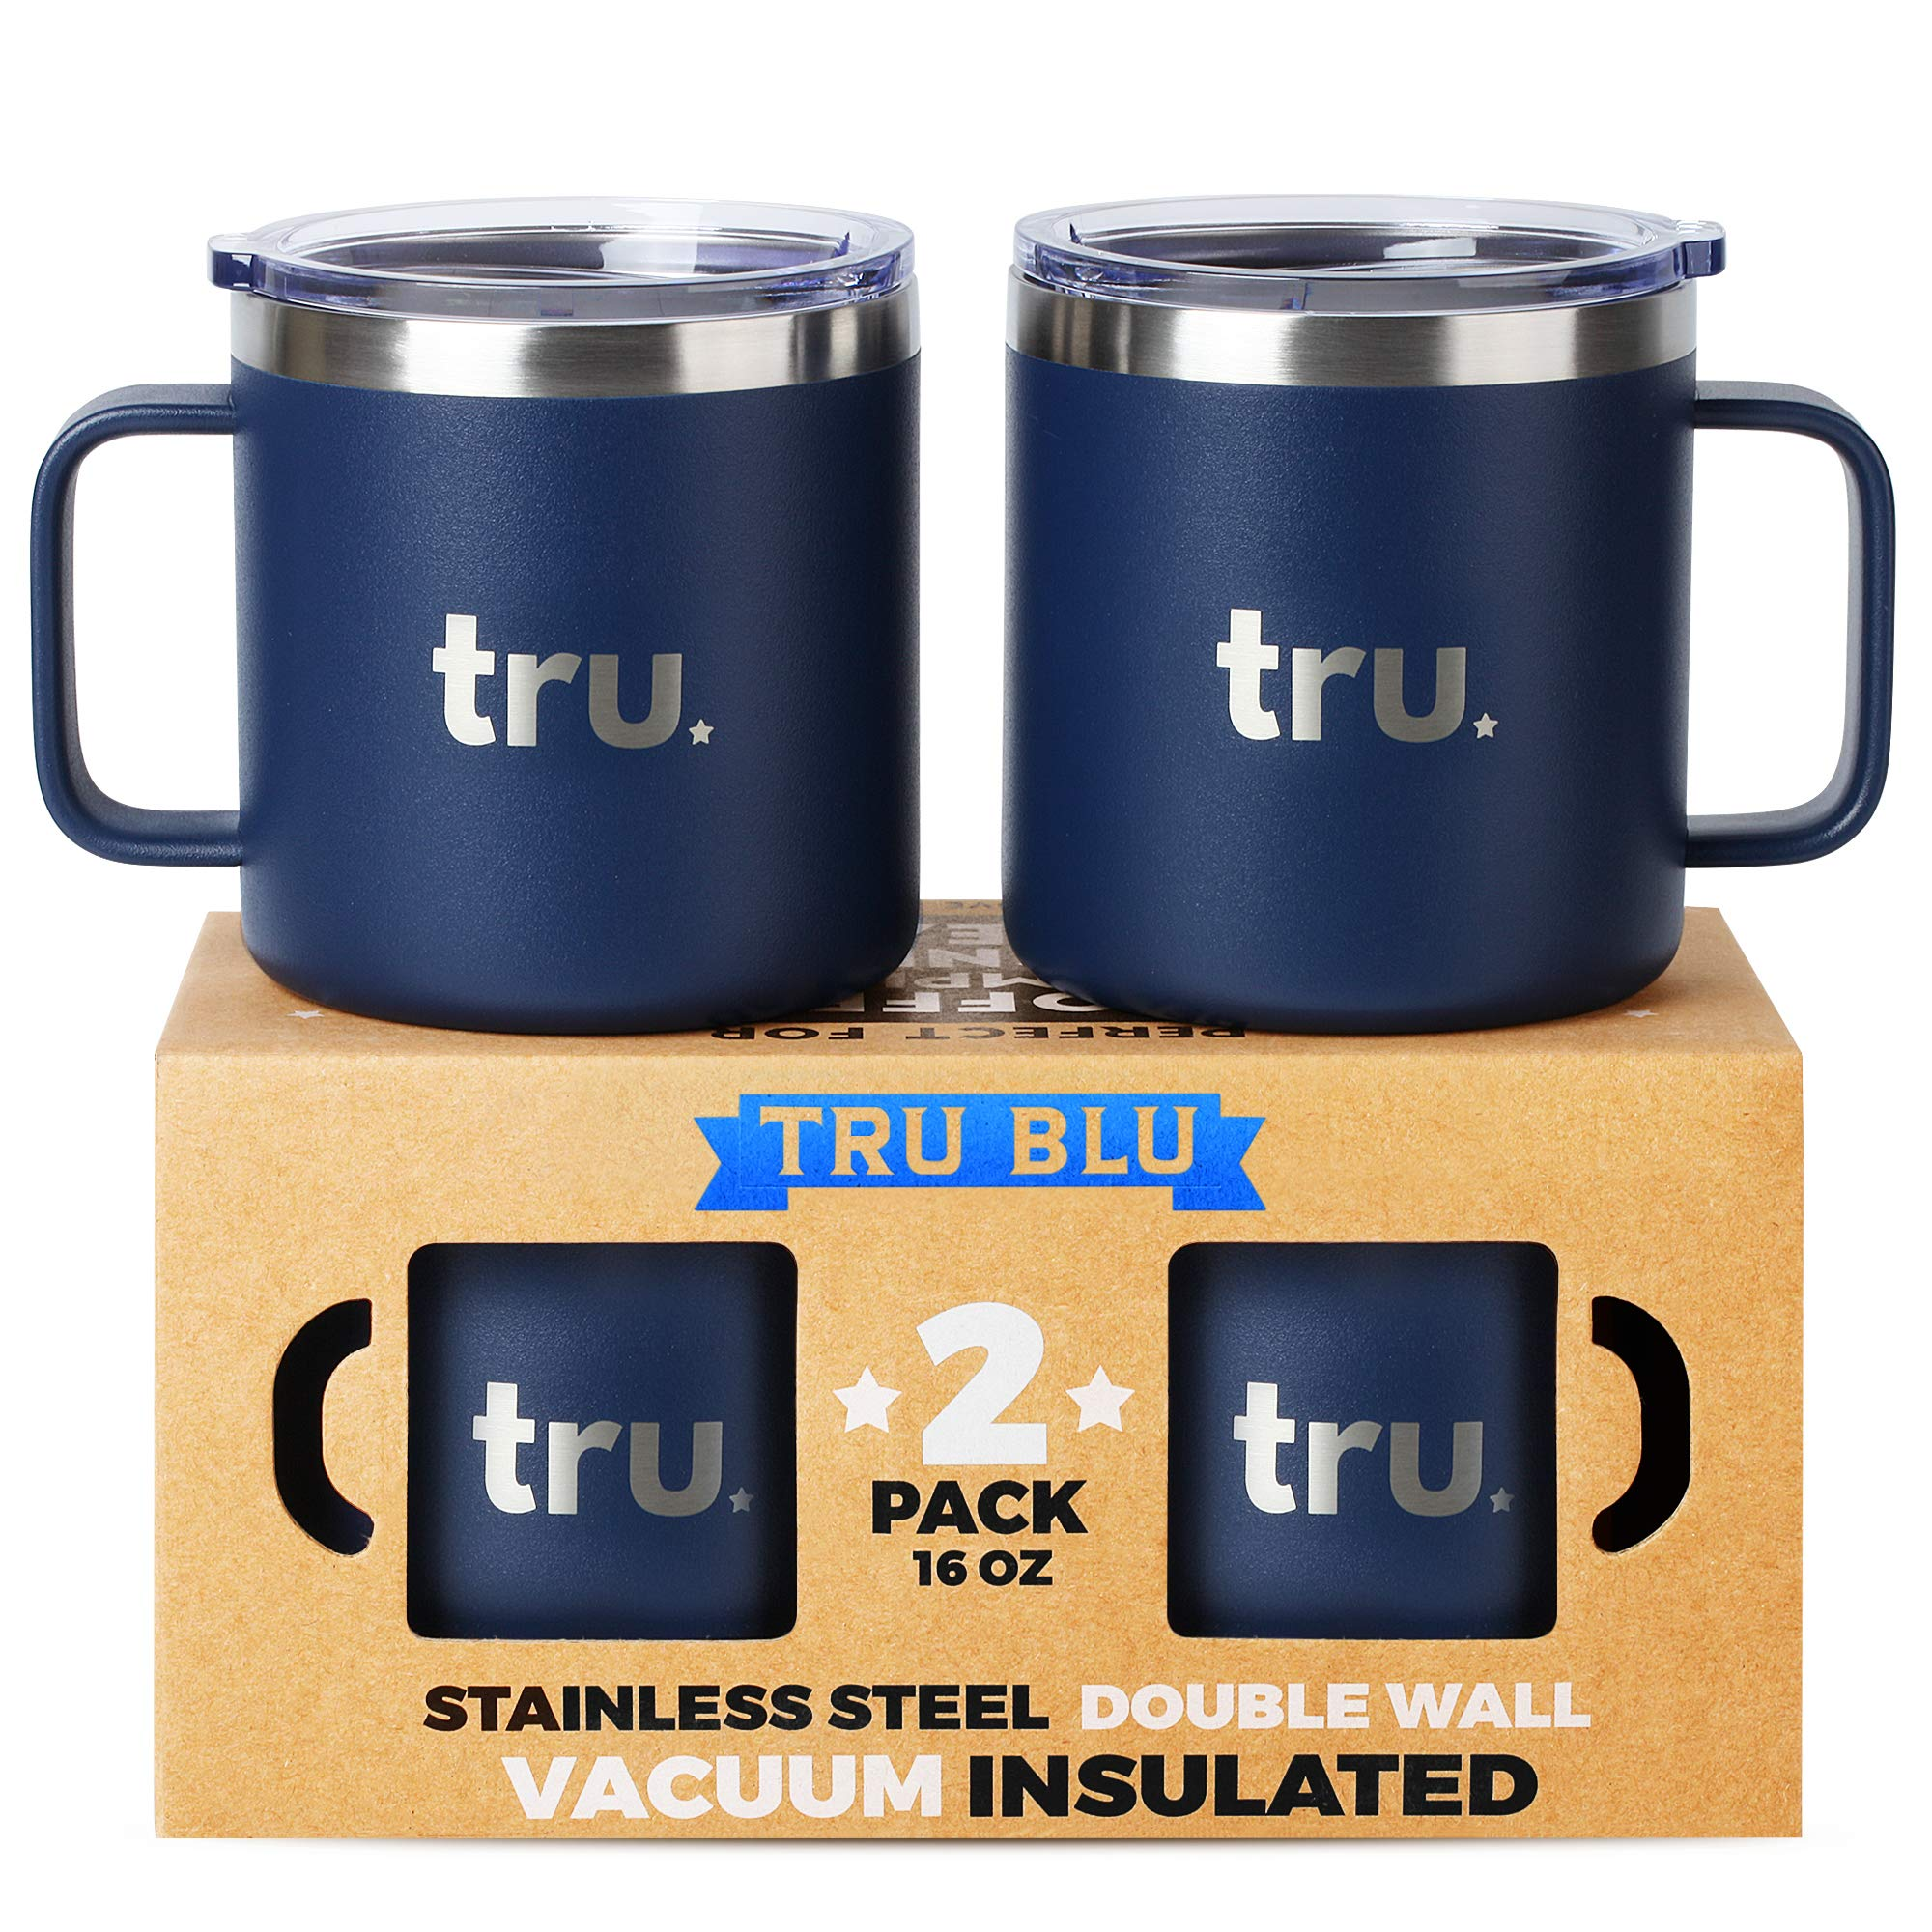 Large Camping Mugs with Lids 16oz, Set of 2 Vacuum Insulated Travel Cups, Stainless Steel Metal Mugs - Outdoor, RV, Hiking, Boating, Portable, BPA Free